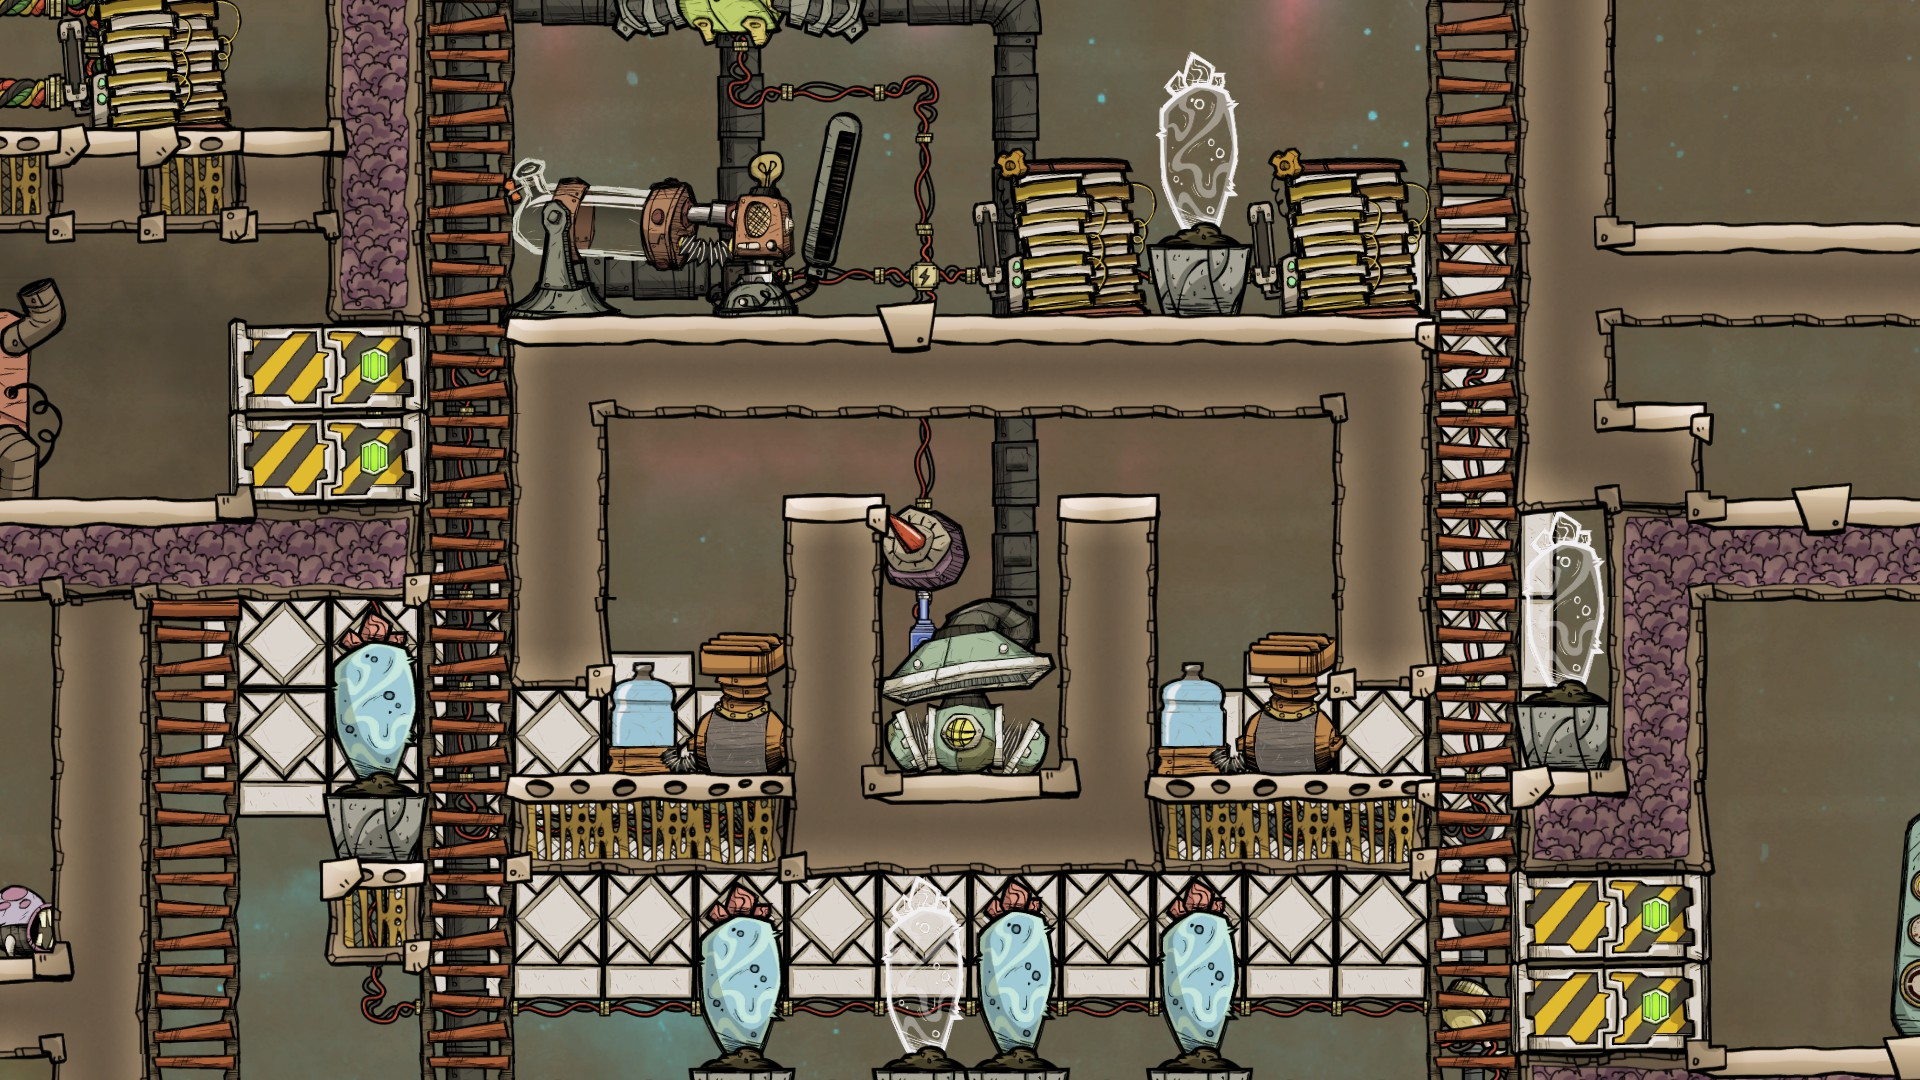 Is my base doomed? - [Oxygen Not Included] - General Discussion